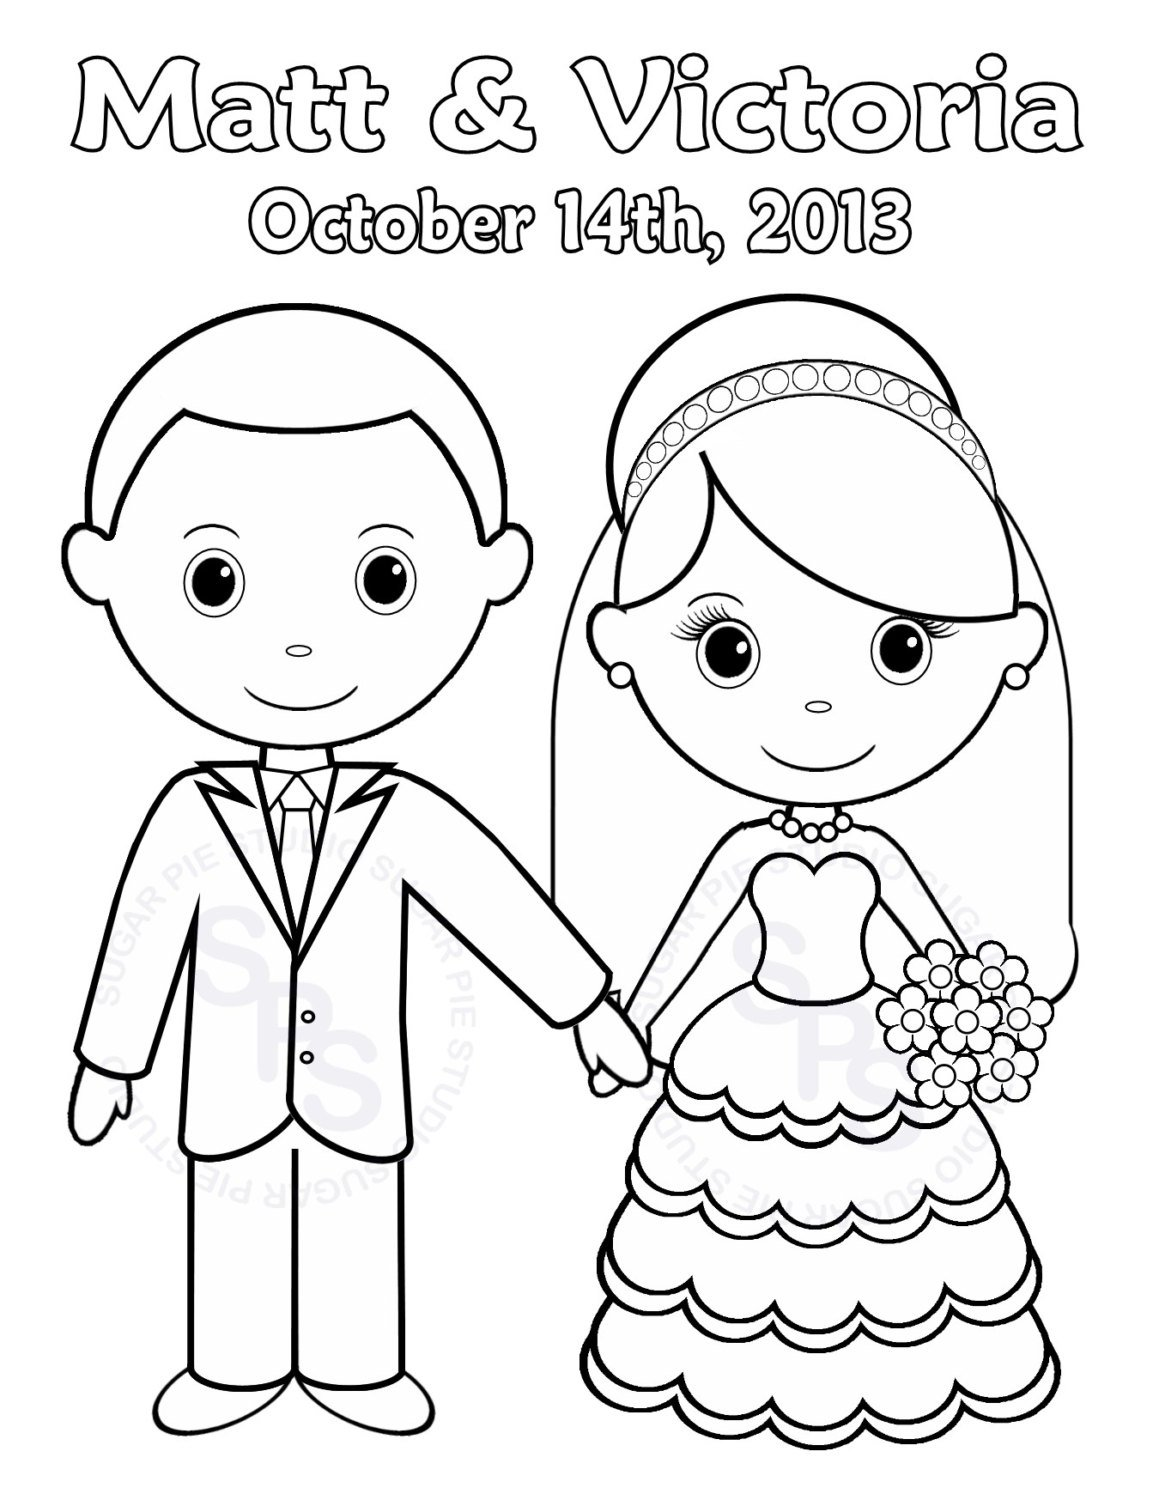 Pictures Wedding Coloring Pages Free 22 For Your Images With